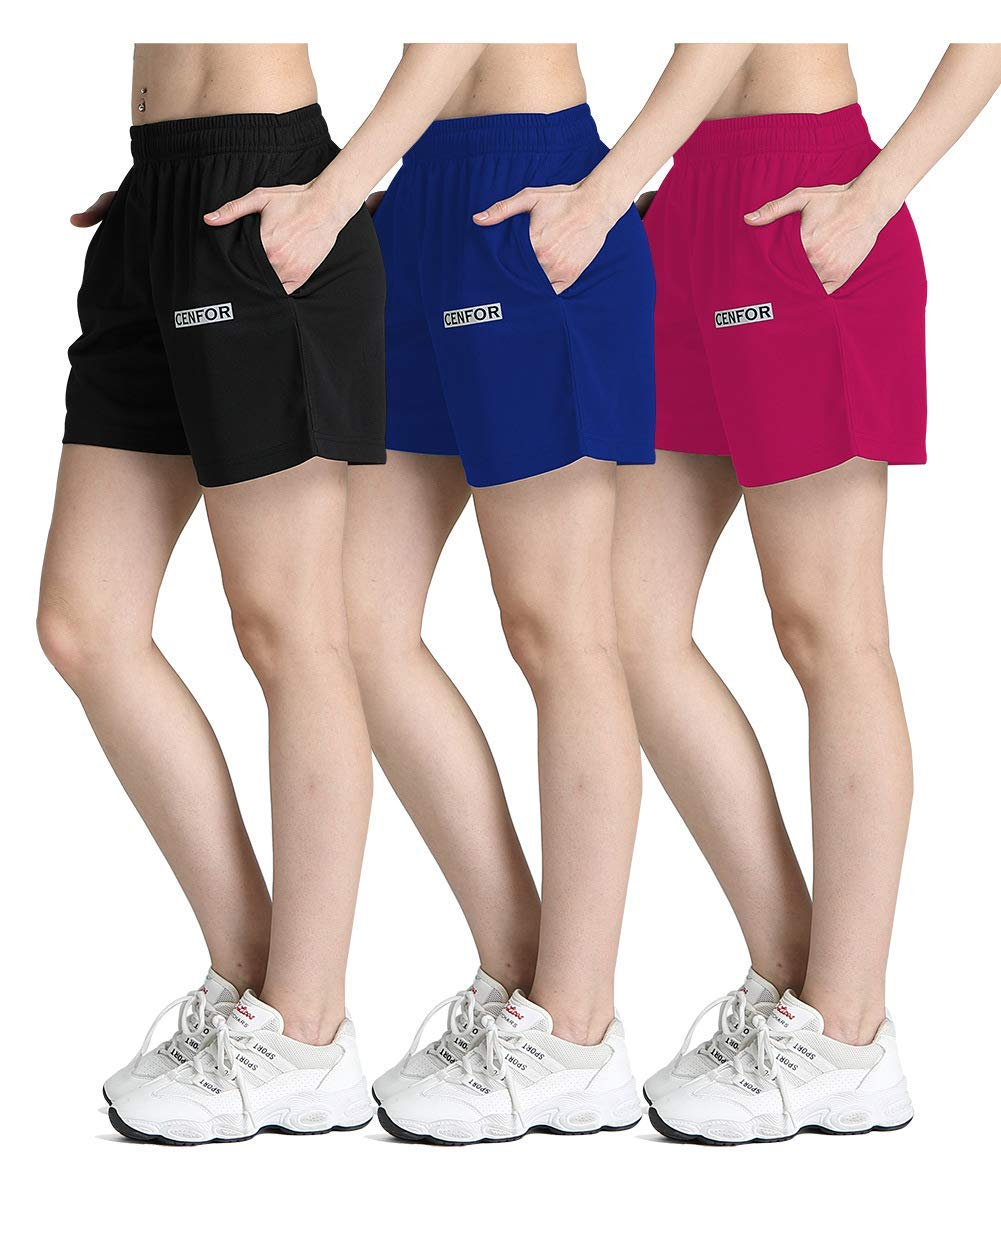 CENFOR Women's 5'' Quick Dry Workout Running Shorts with Pockets for Gym, Training, Jogging and Leisure Set (Black,Blue,Rose Red,3 Piece S) by CENFOR